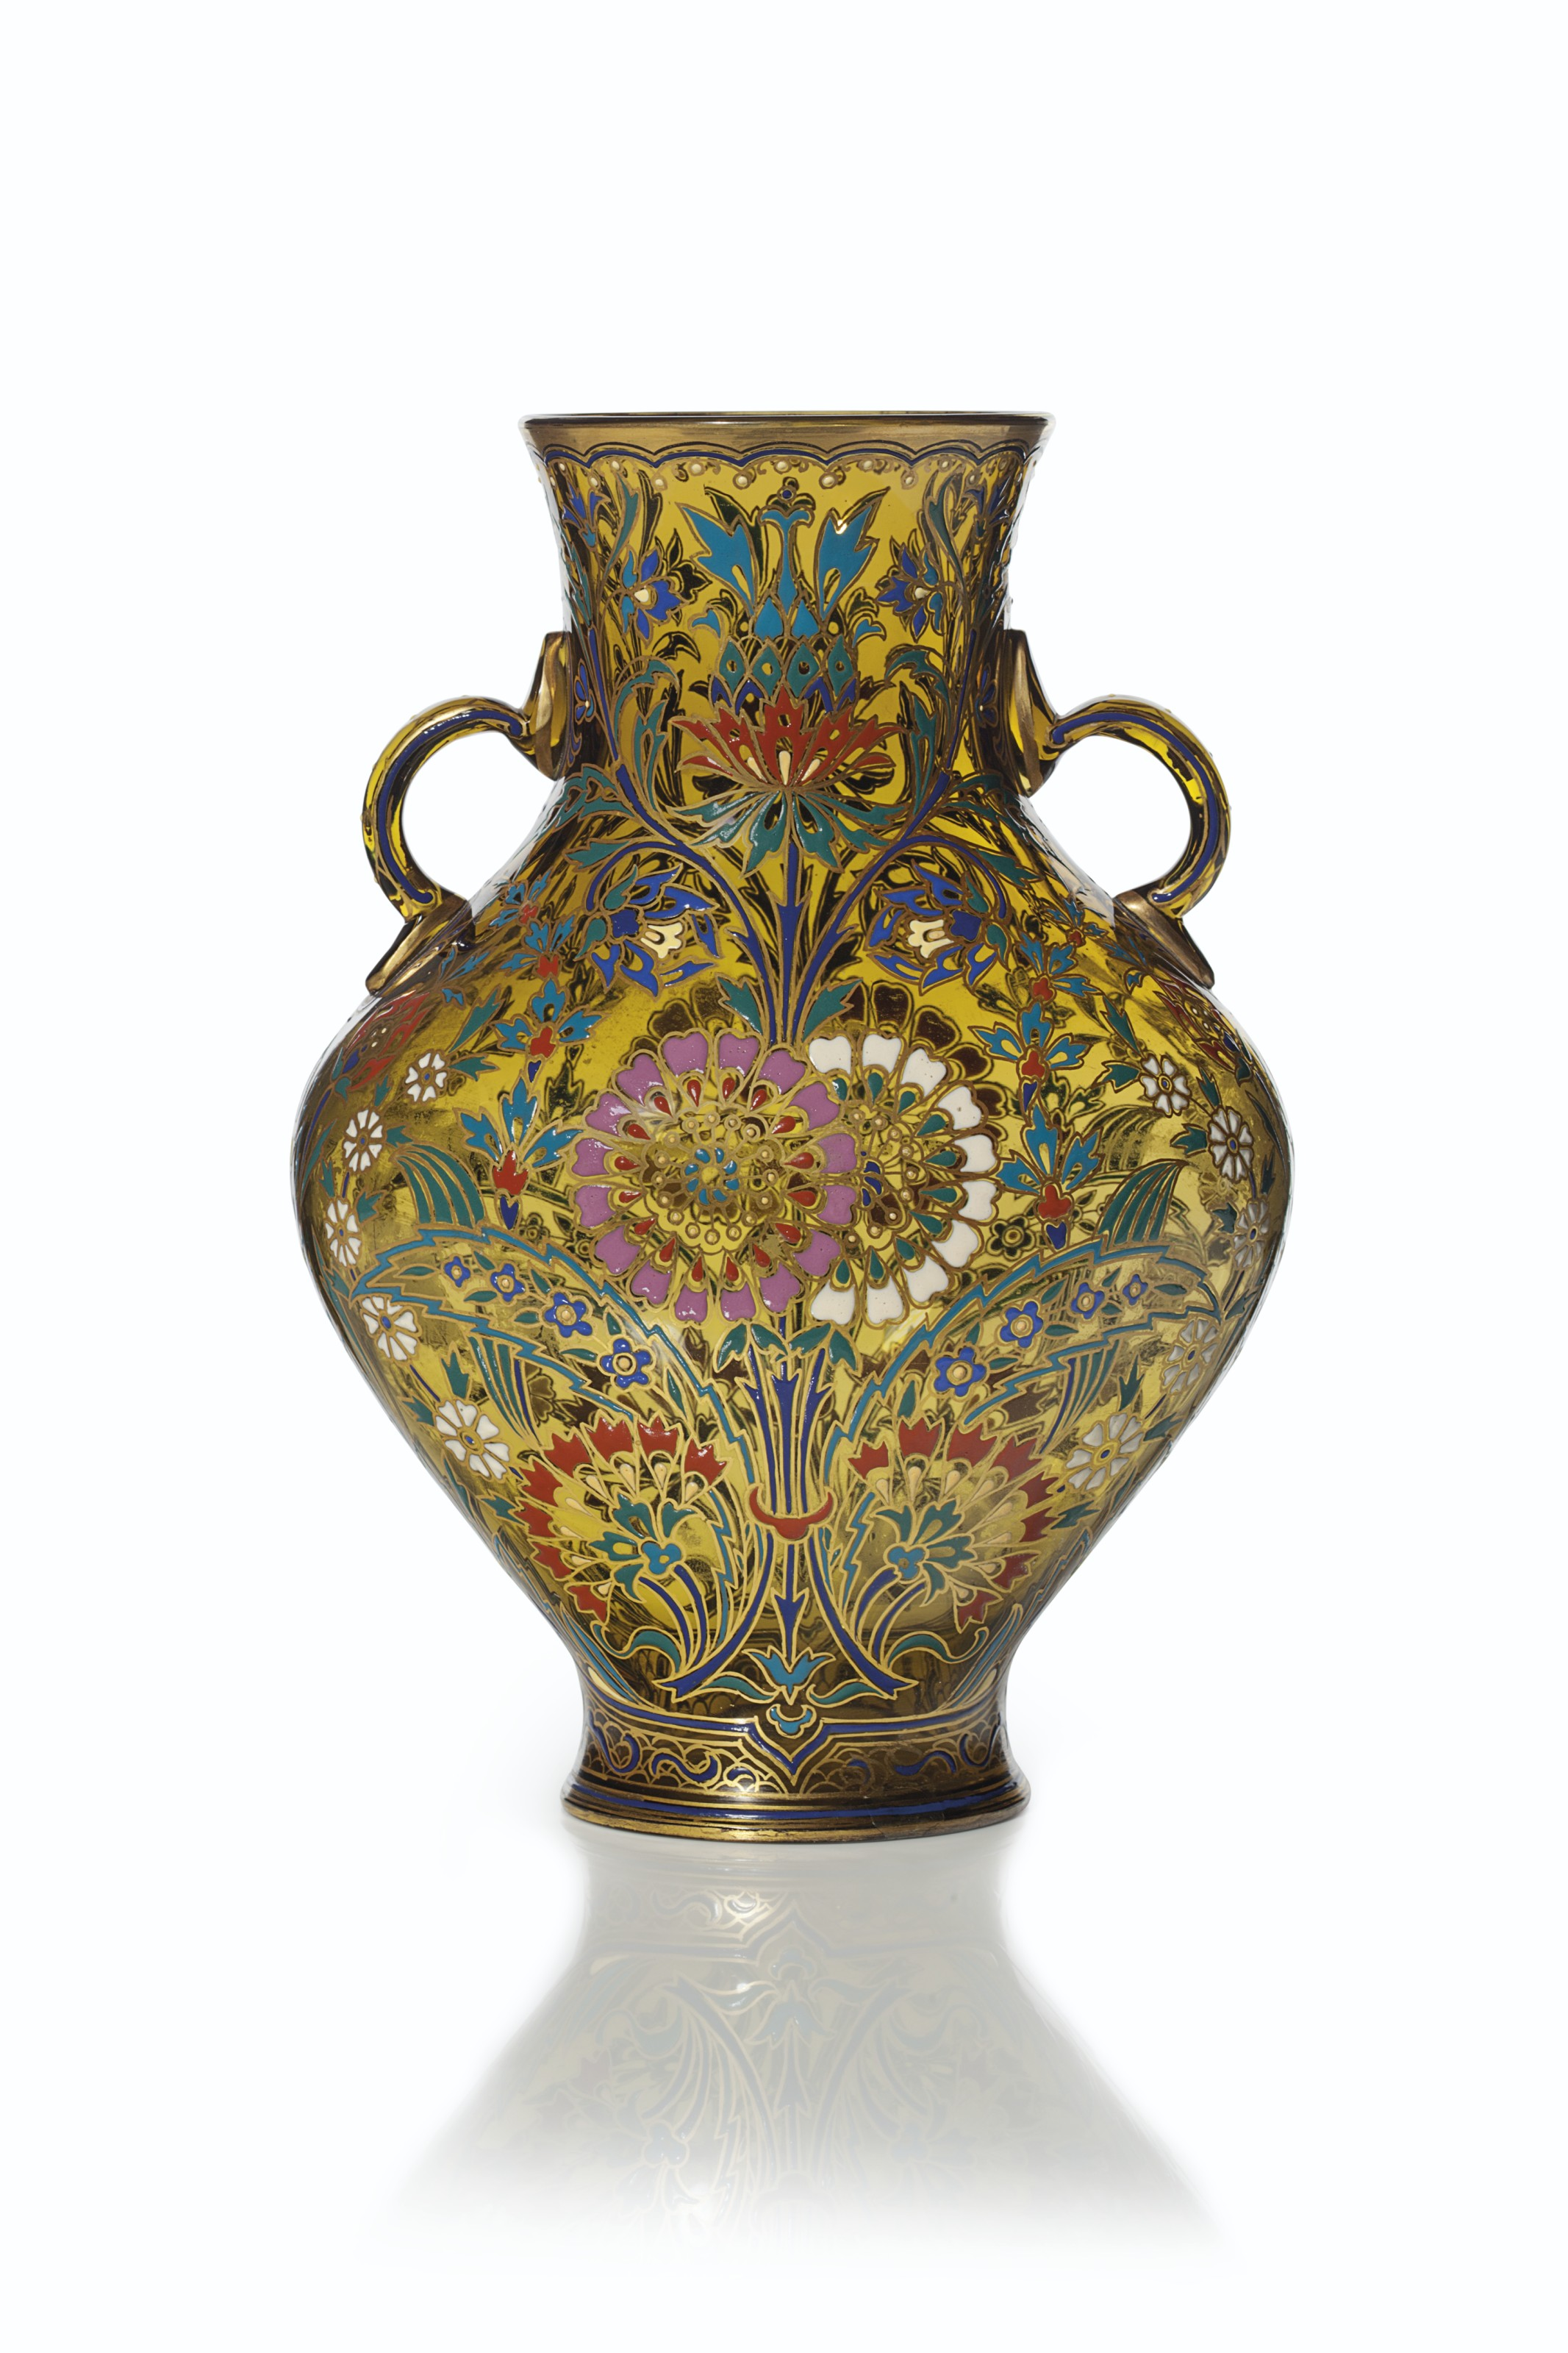 A J. & L. LOBMEYR TWO-HANDLED ENAMELED 'PERSIAN STYLE' AMBER GLASS VASE